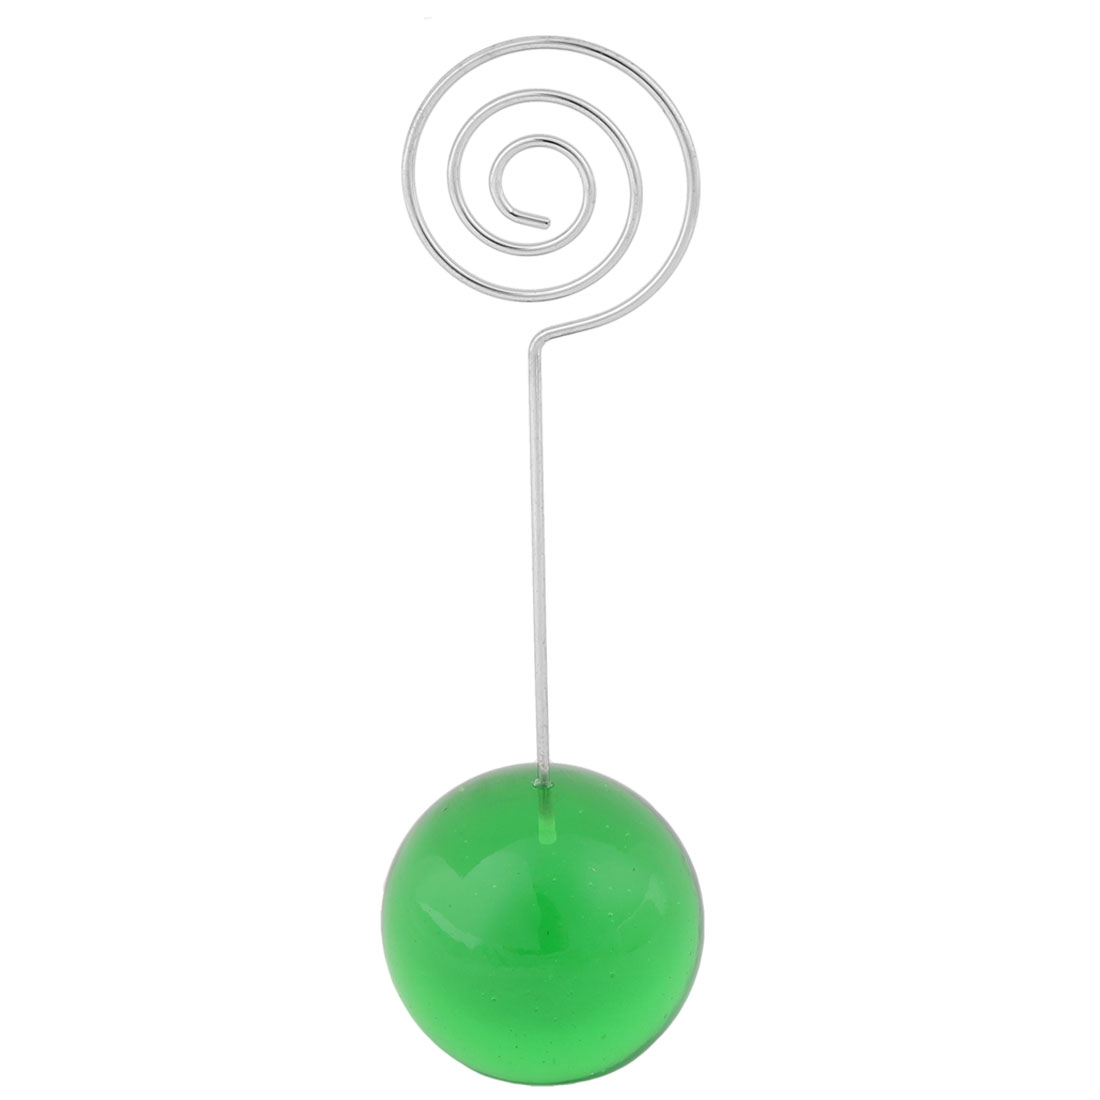 Office Desktop Ball Shaped Spiral Design Clamps Tag Photos Paper Memo Clip Green